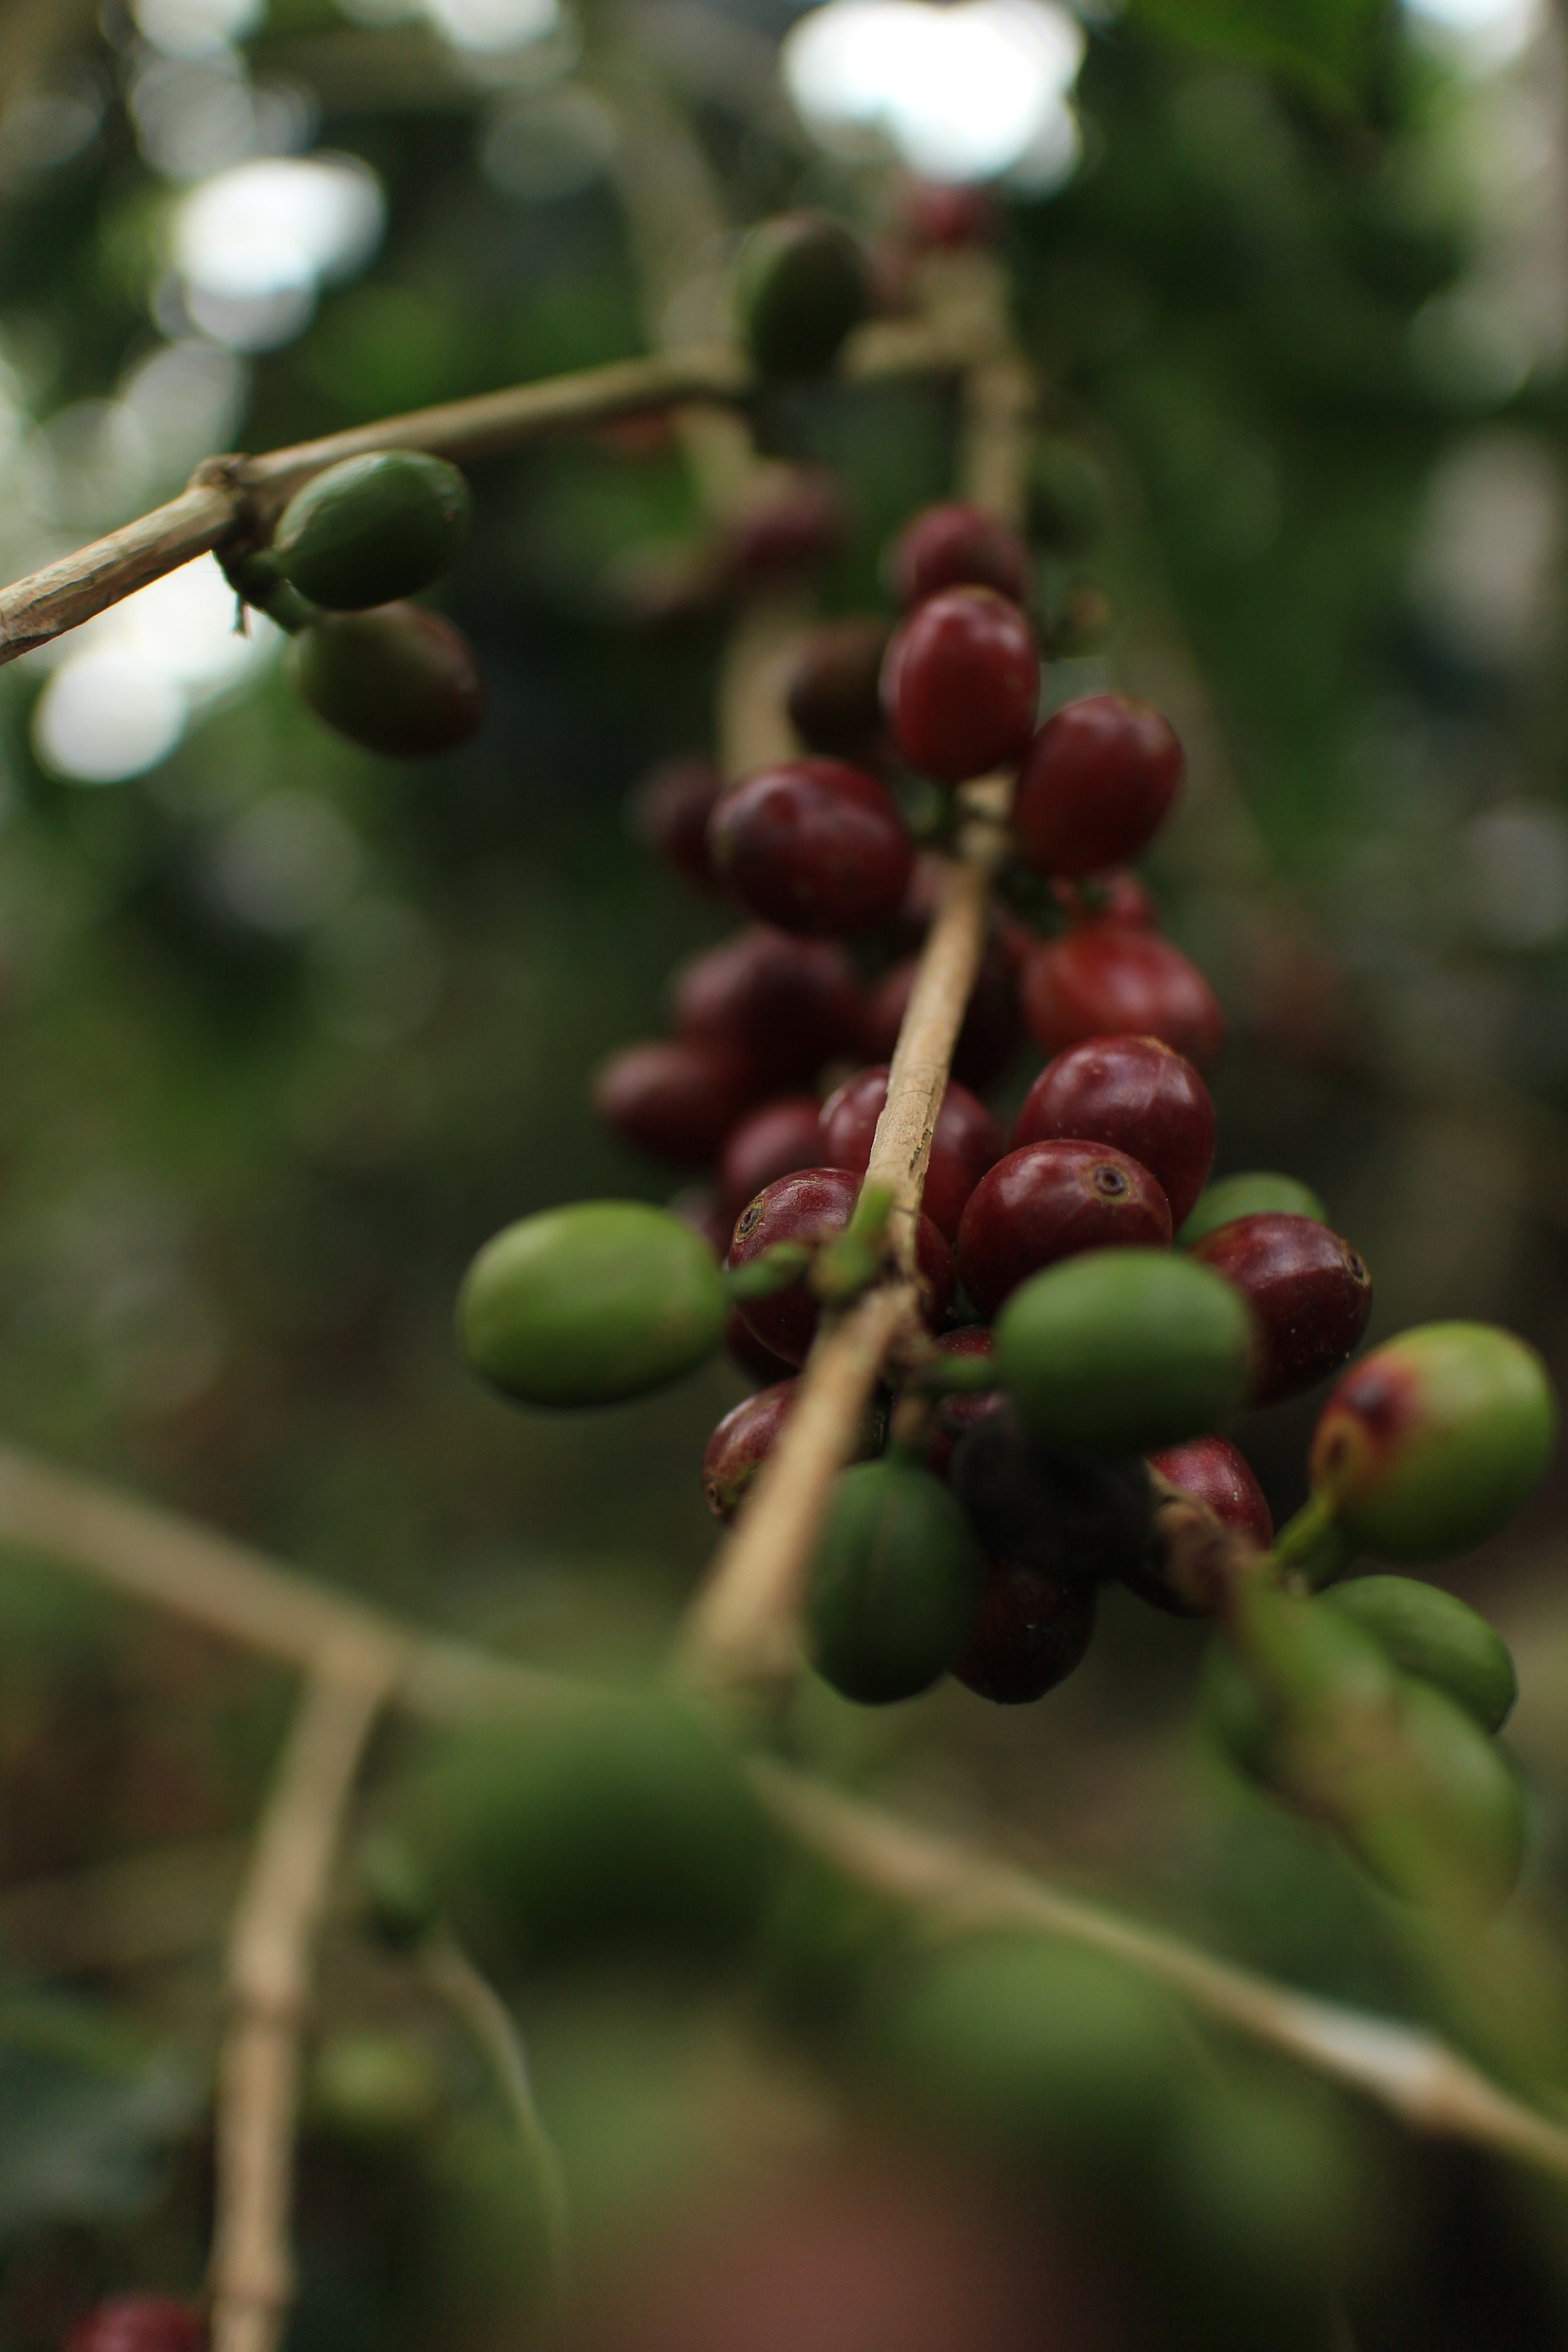 Coffee grows on the Sitio Belis farm.